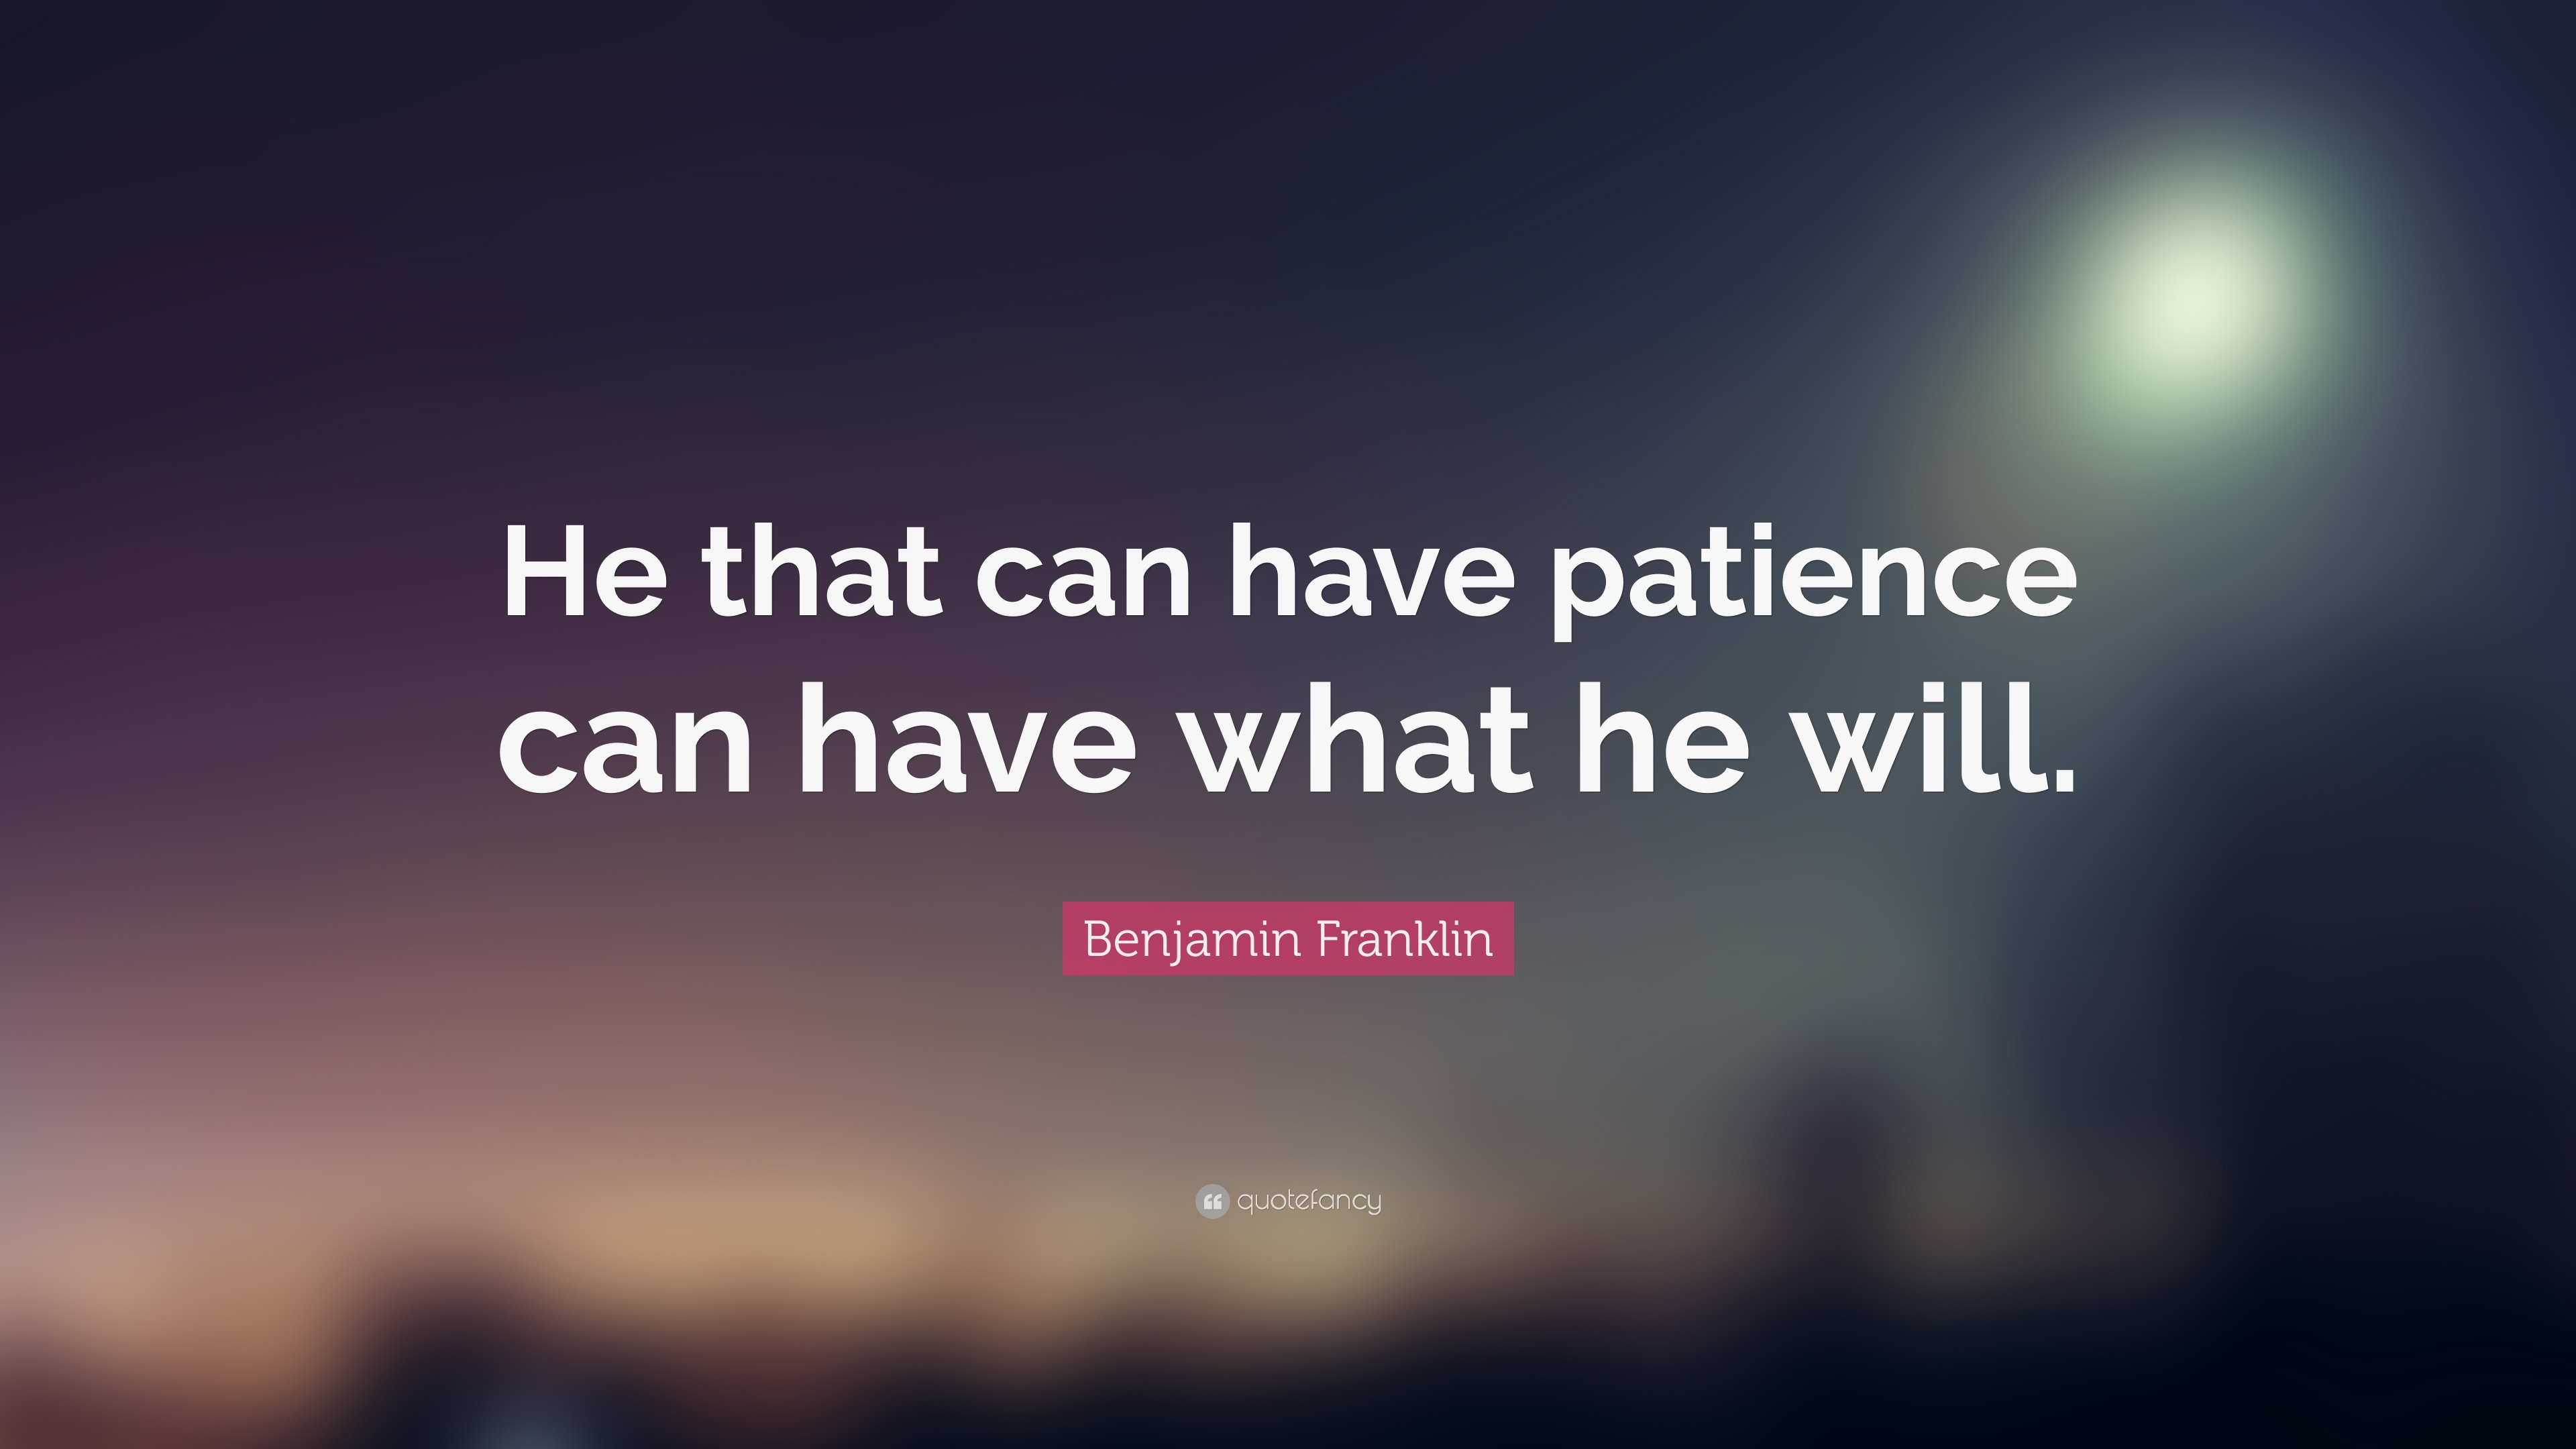 High Quality Benjamin Franklin Quote: U201cHe That Can Have Patience Can Have What He Will.